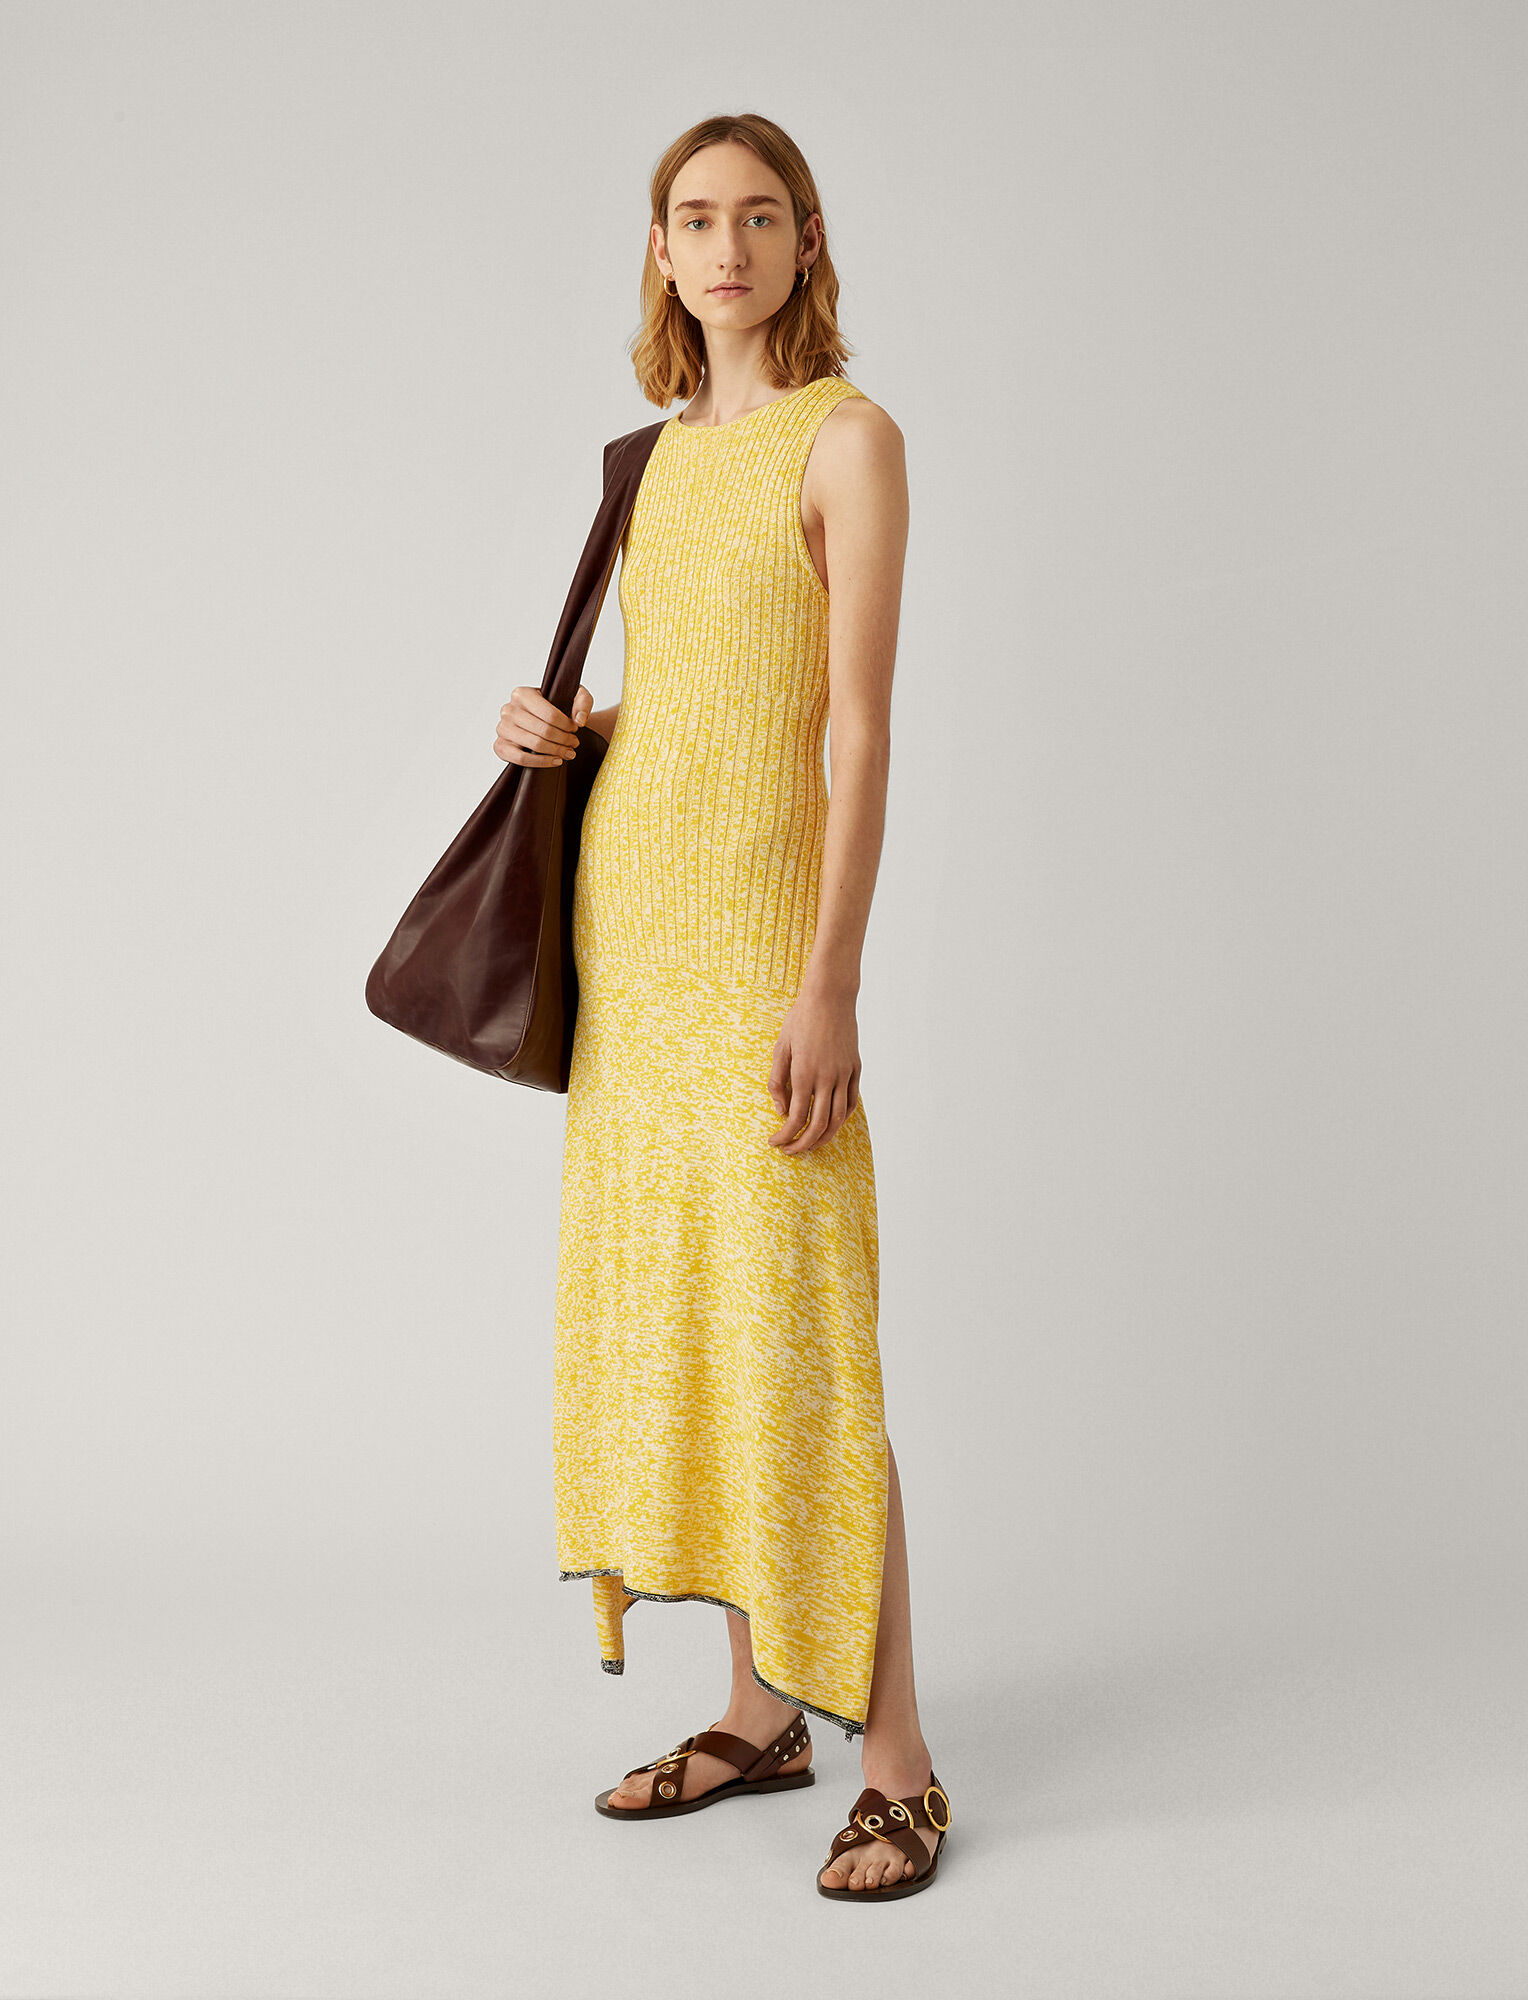 Joseph, Darla Cotton Viscose Rib Dress, in YELLOW